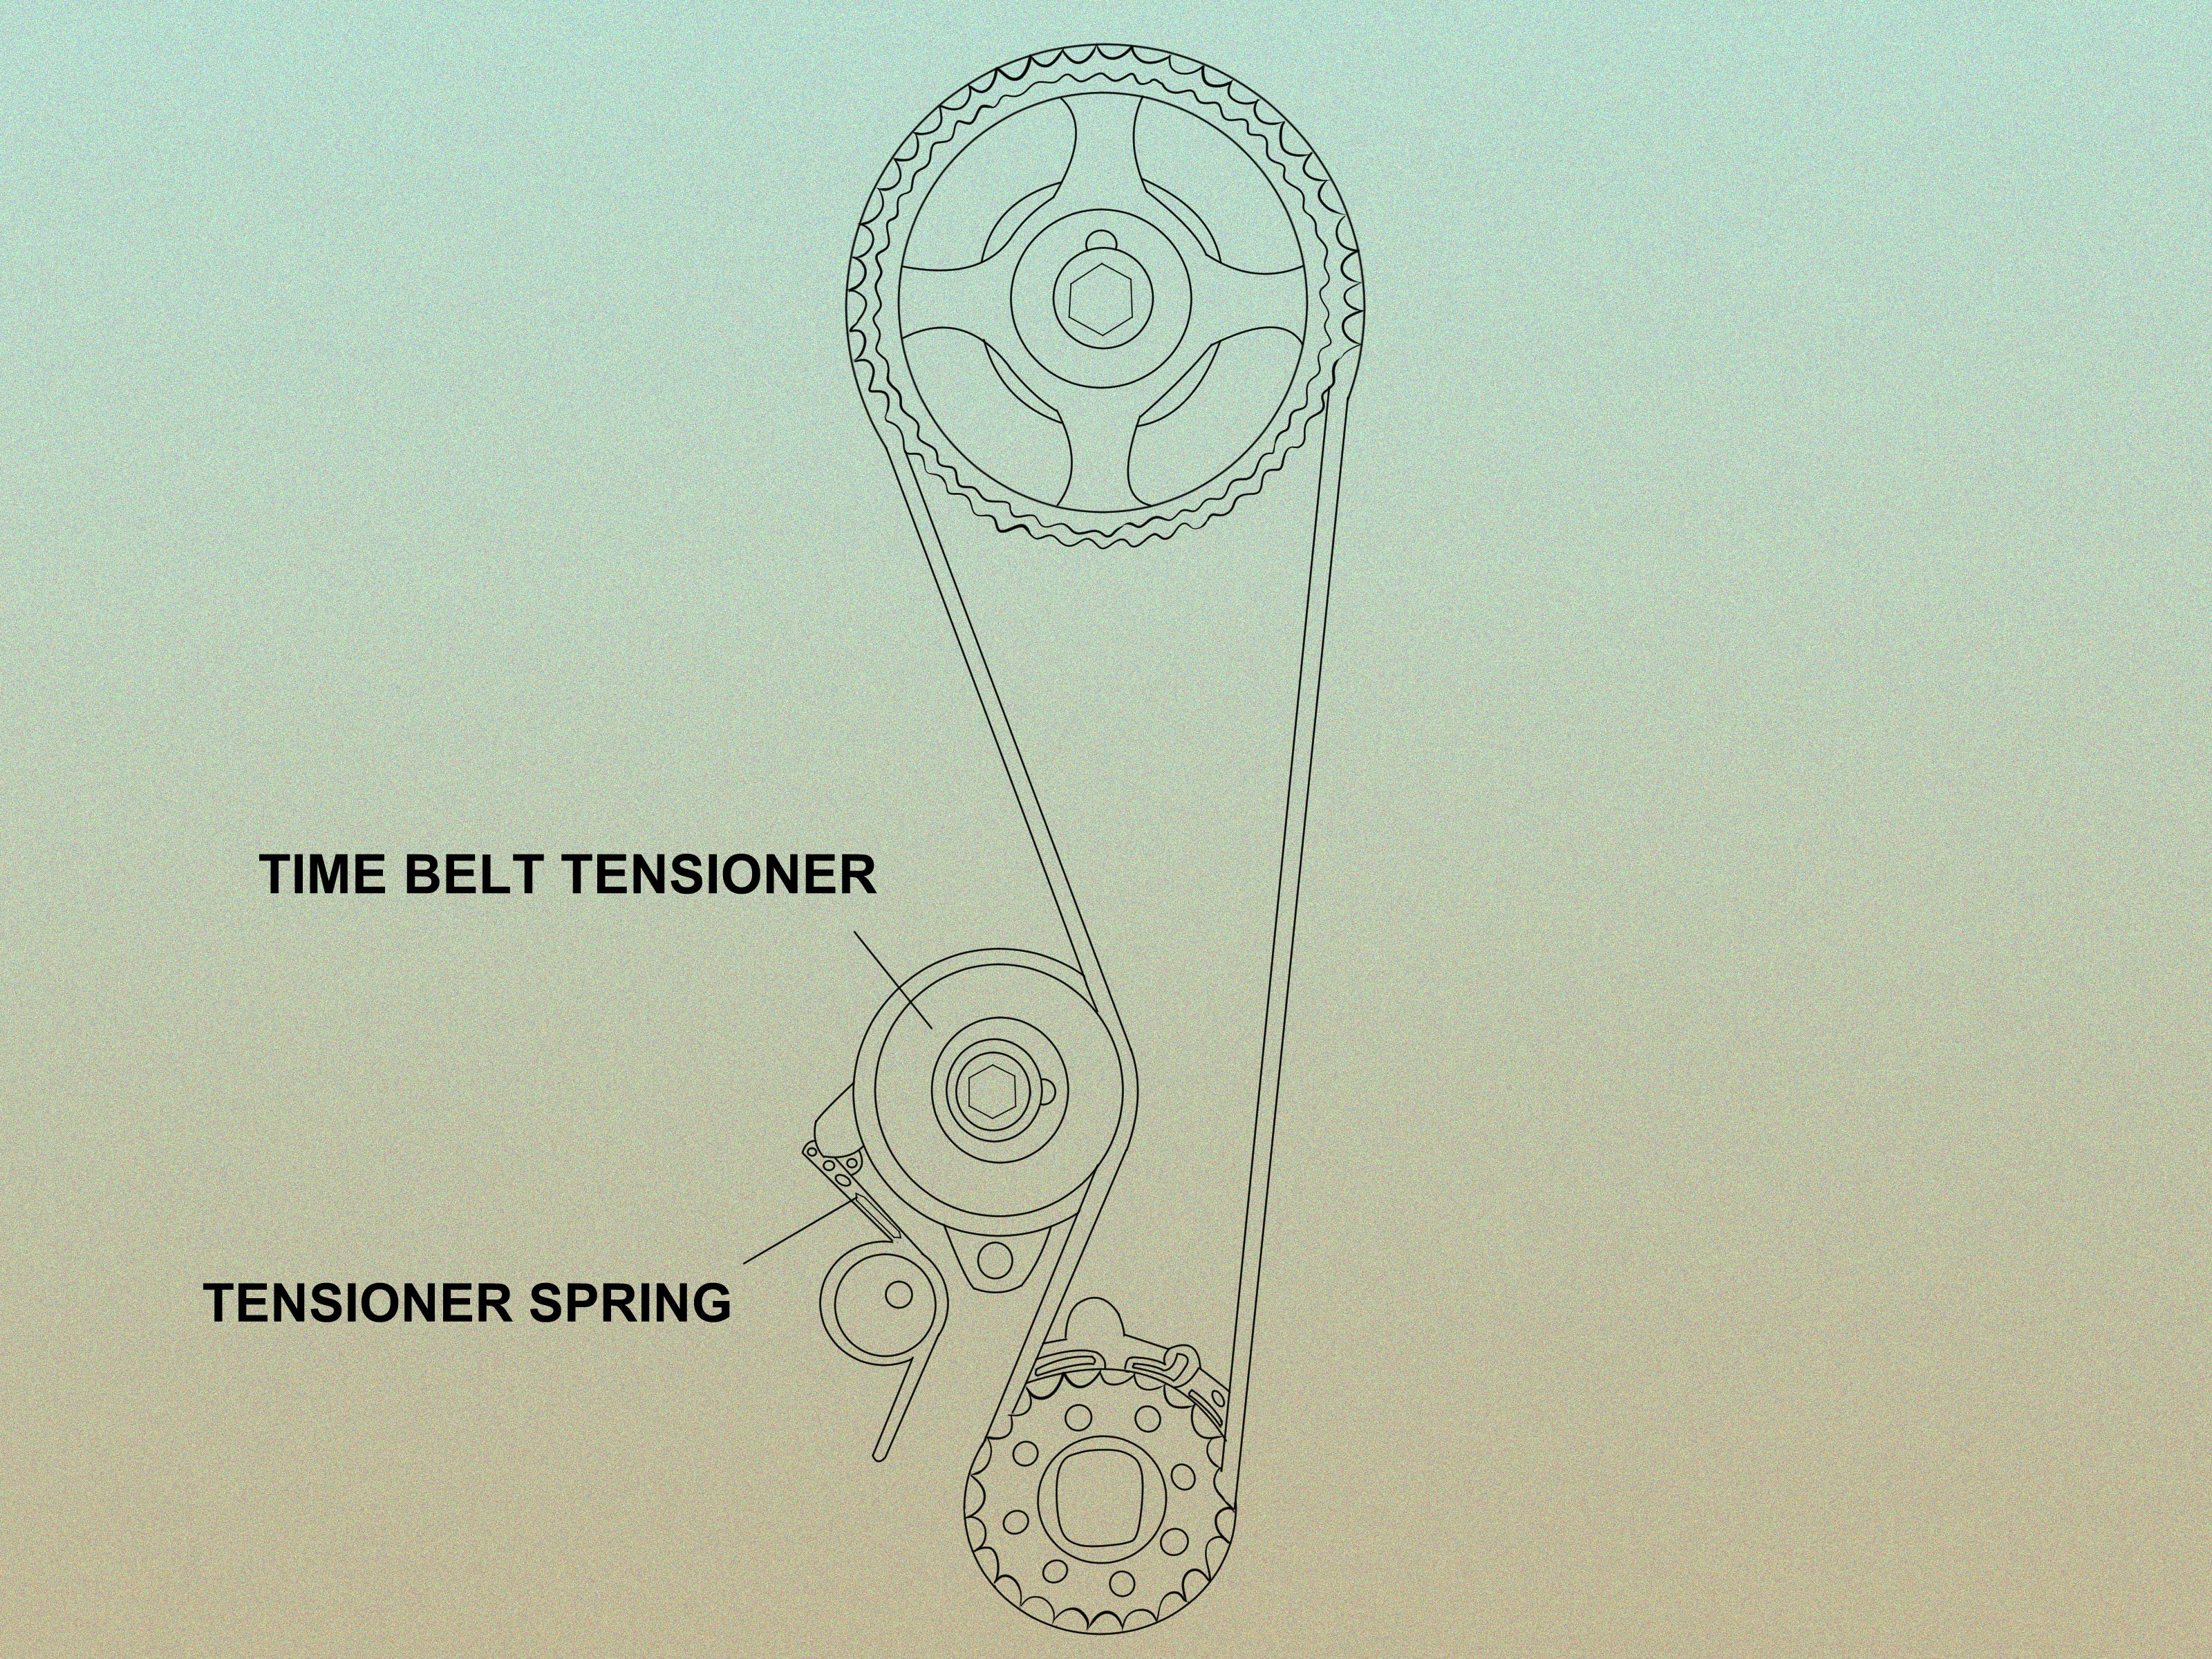 Suzuki forenza Engine Diagram How to Tell if A Timing Belt Tensioner is Bad 6 Steps Of Suzuki forenza Engine Diagram